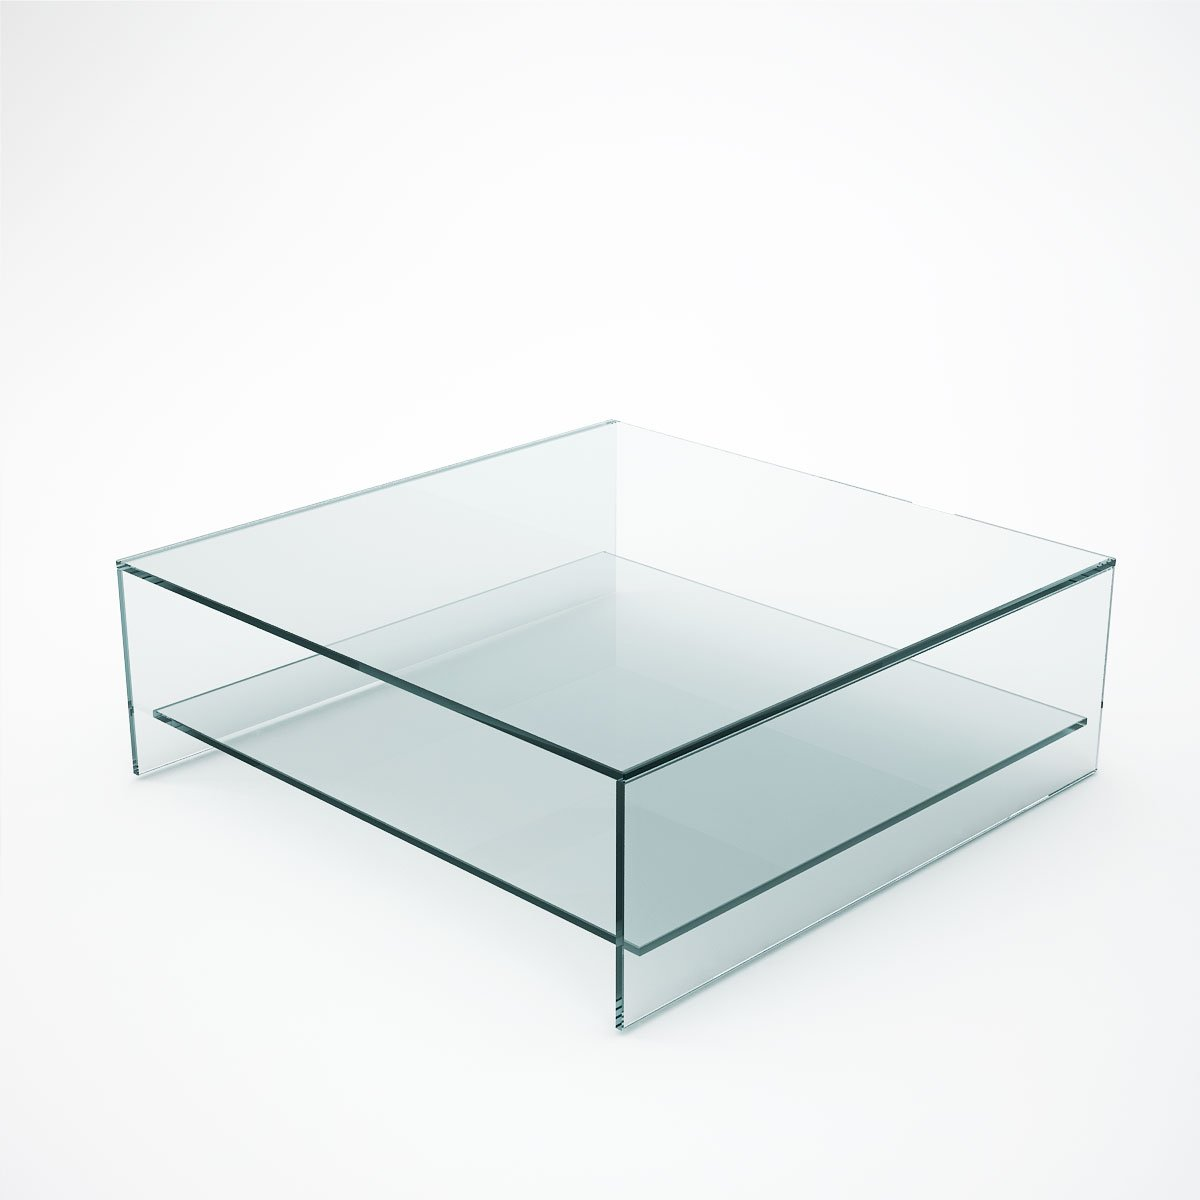 Couchtisch Glas Ablage Judd - Square Glass Coffee Table With Shelf - Klarity